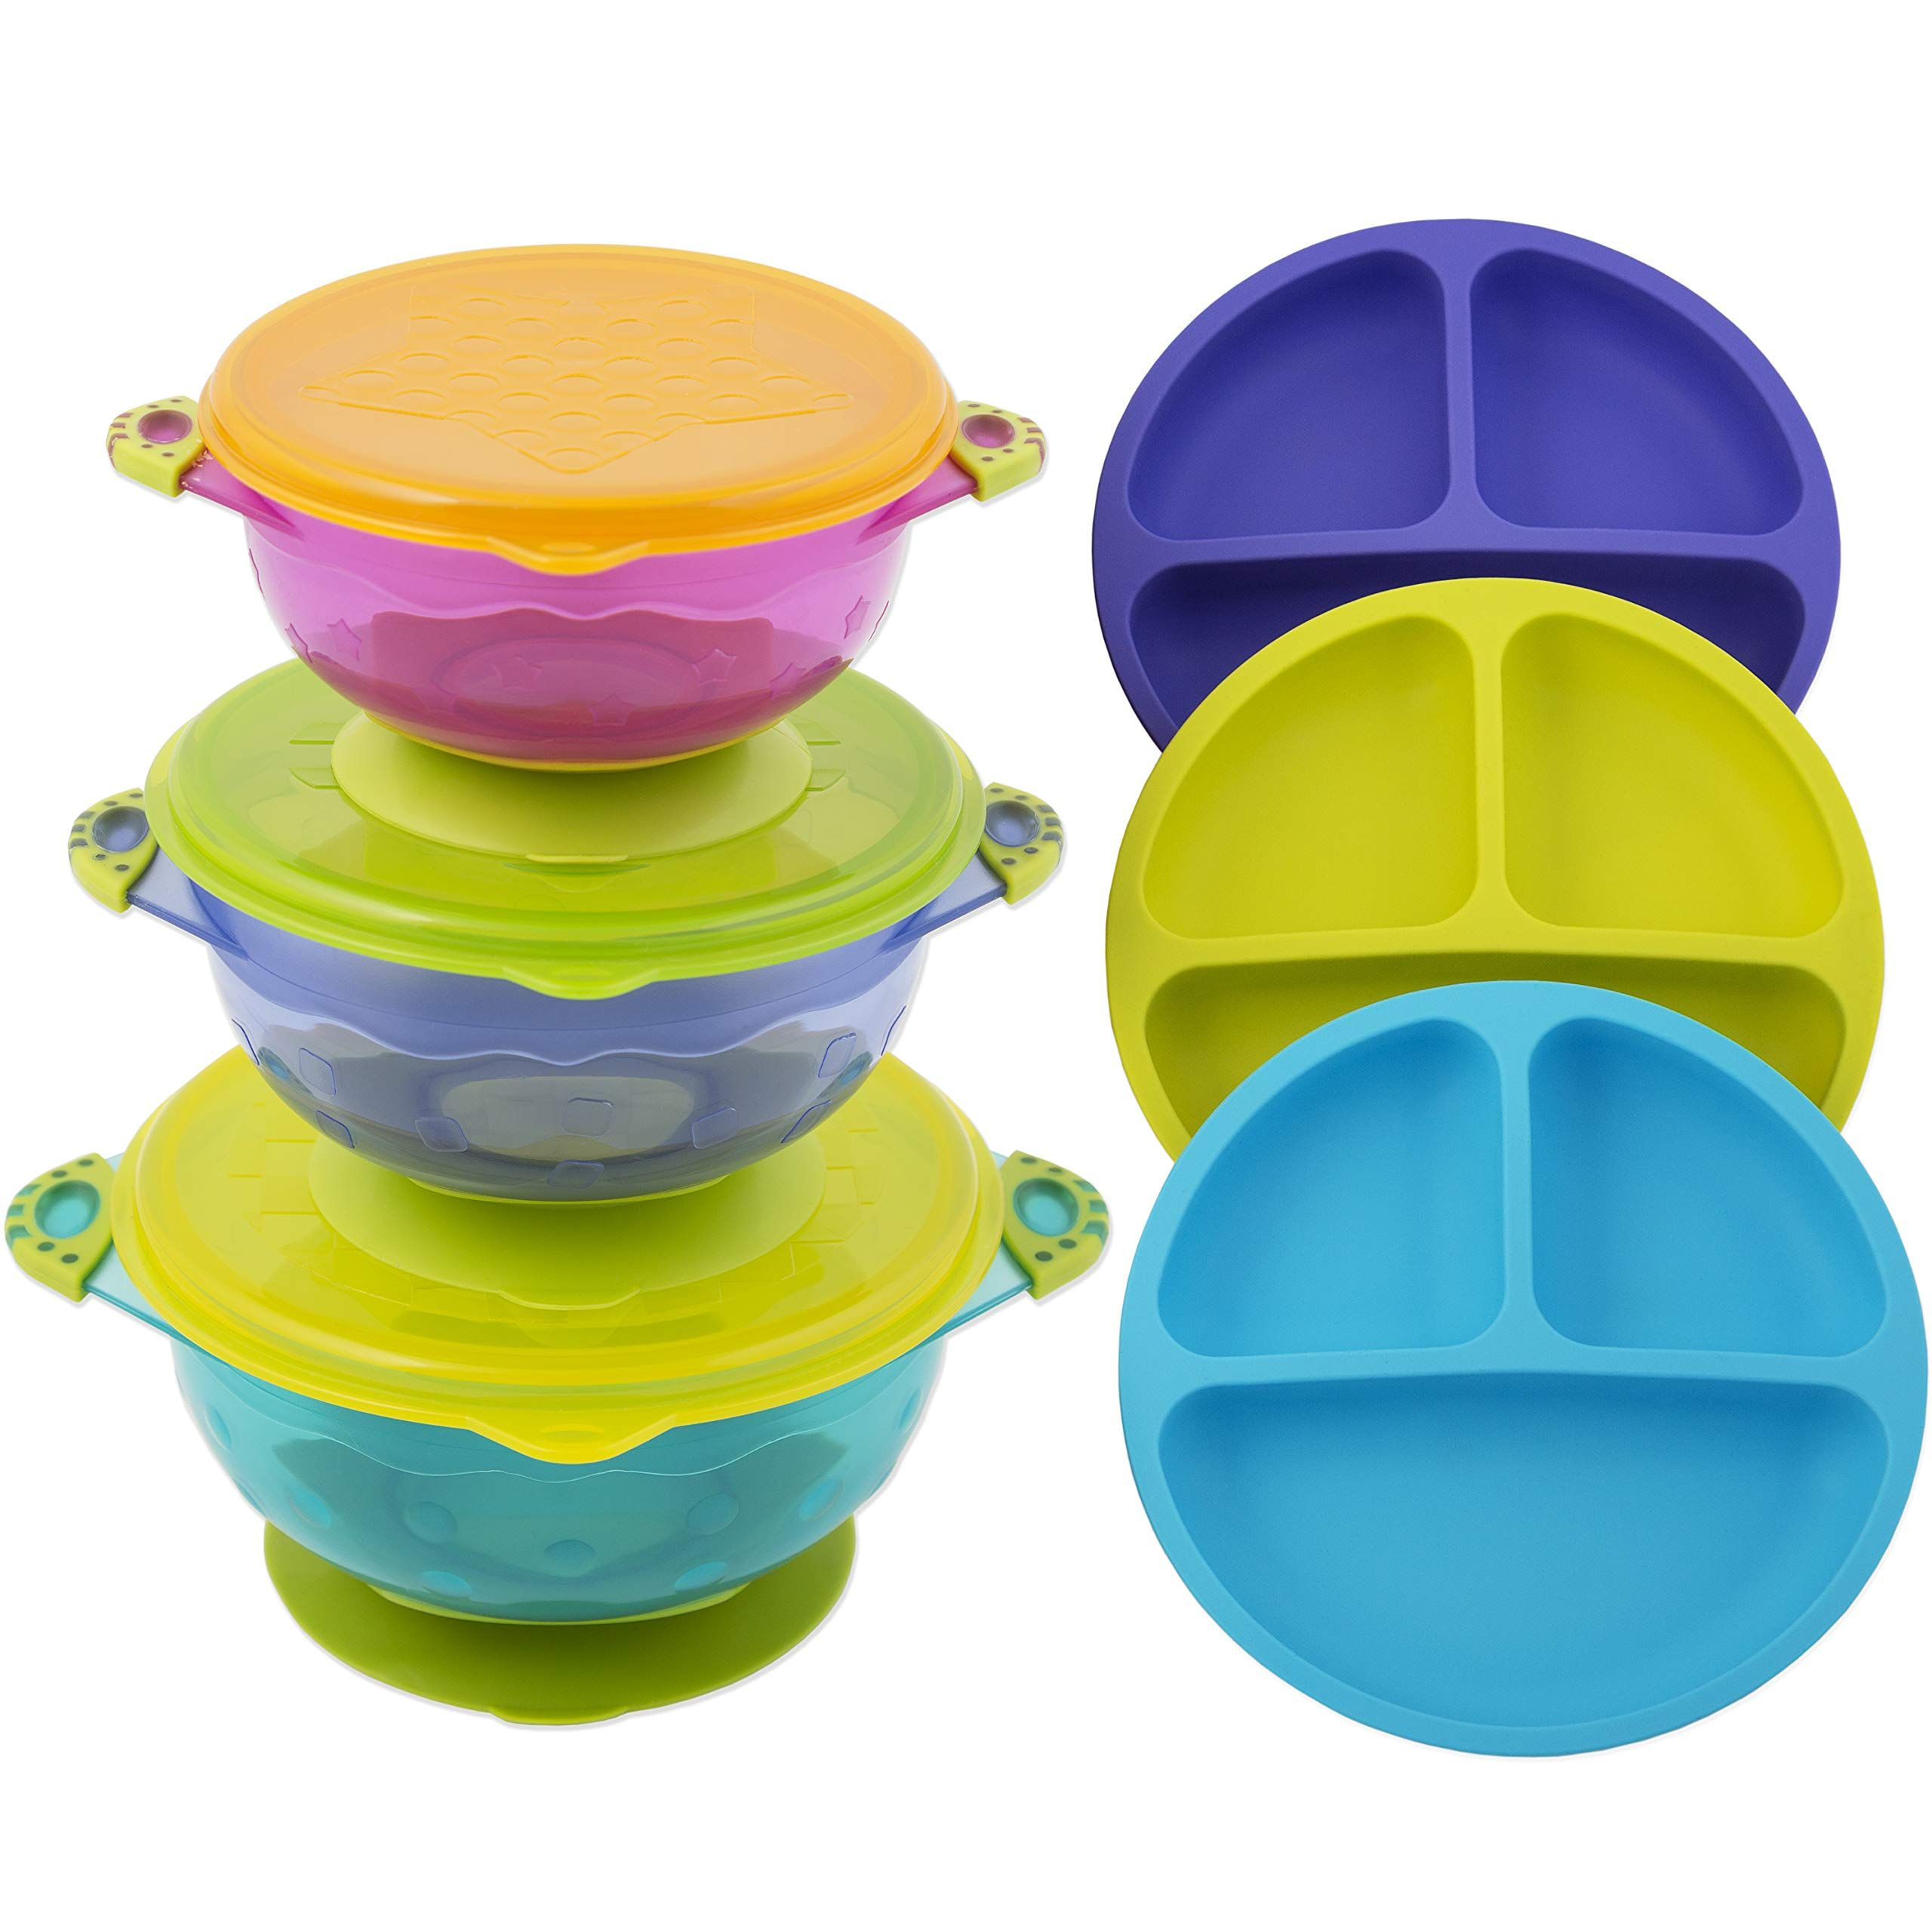 2 Divided Mealtime Feeding Plates Bowls Baby Toddler Blue Pink BPA Free